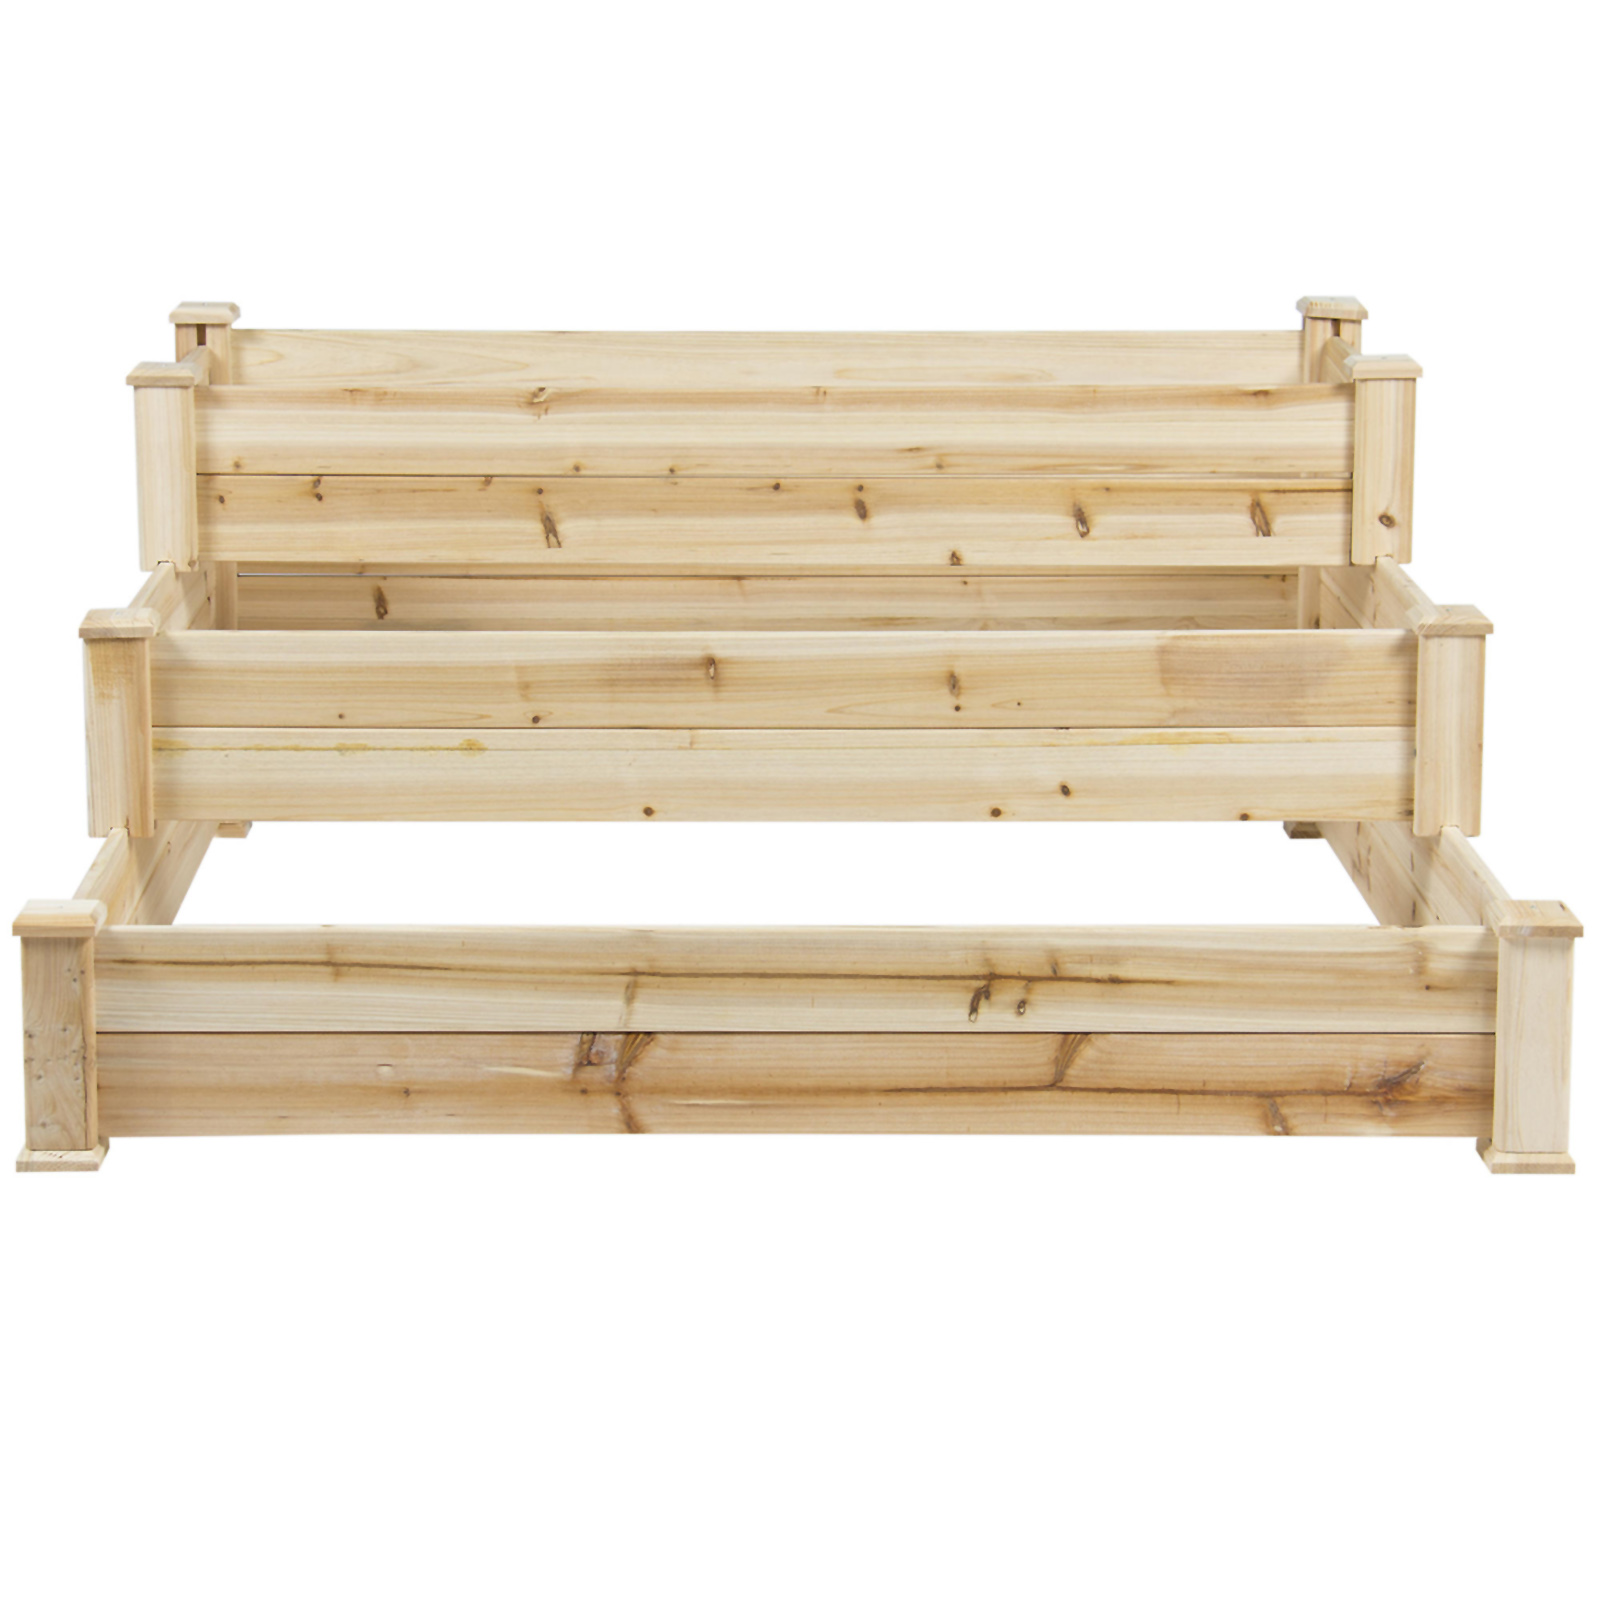 """Raised Garden Bed Construction: Best Choice Products 3-Tier 49"""" Wood Garden Bed"""